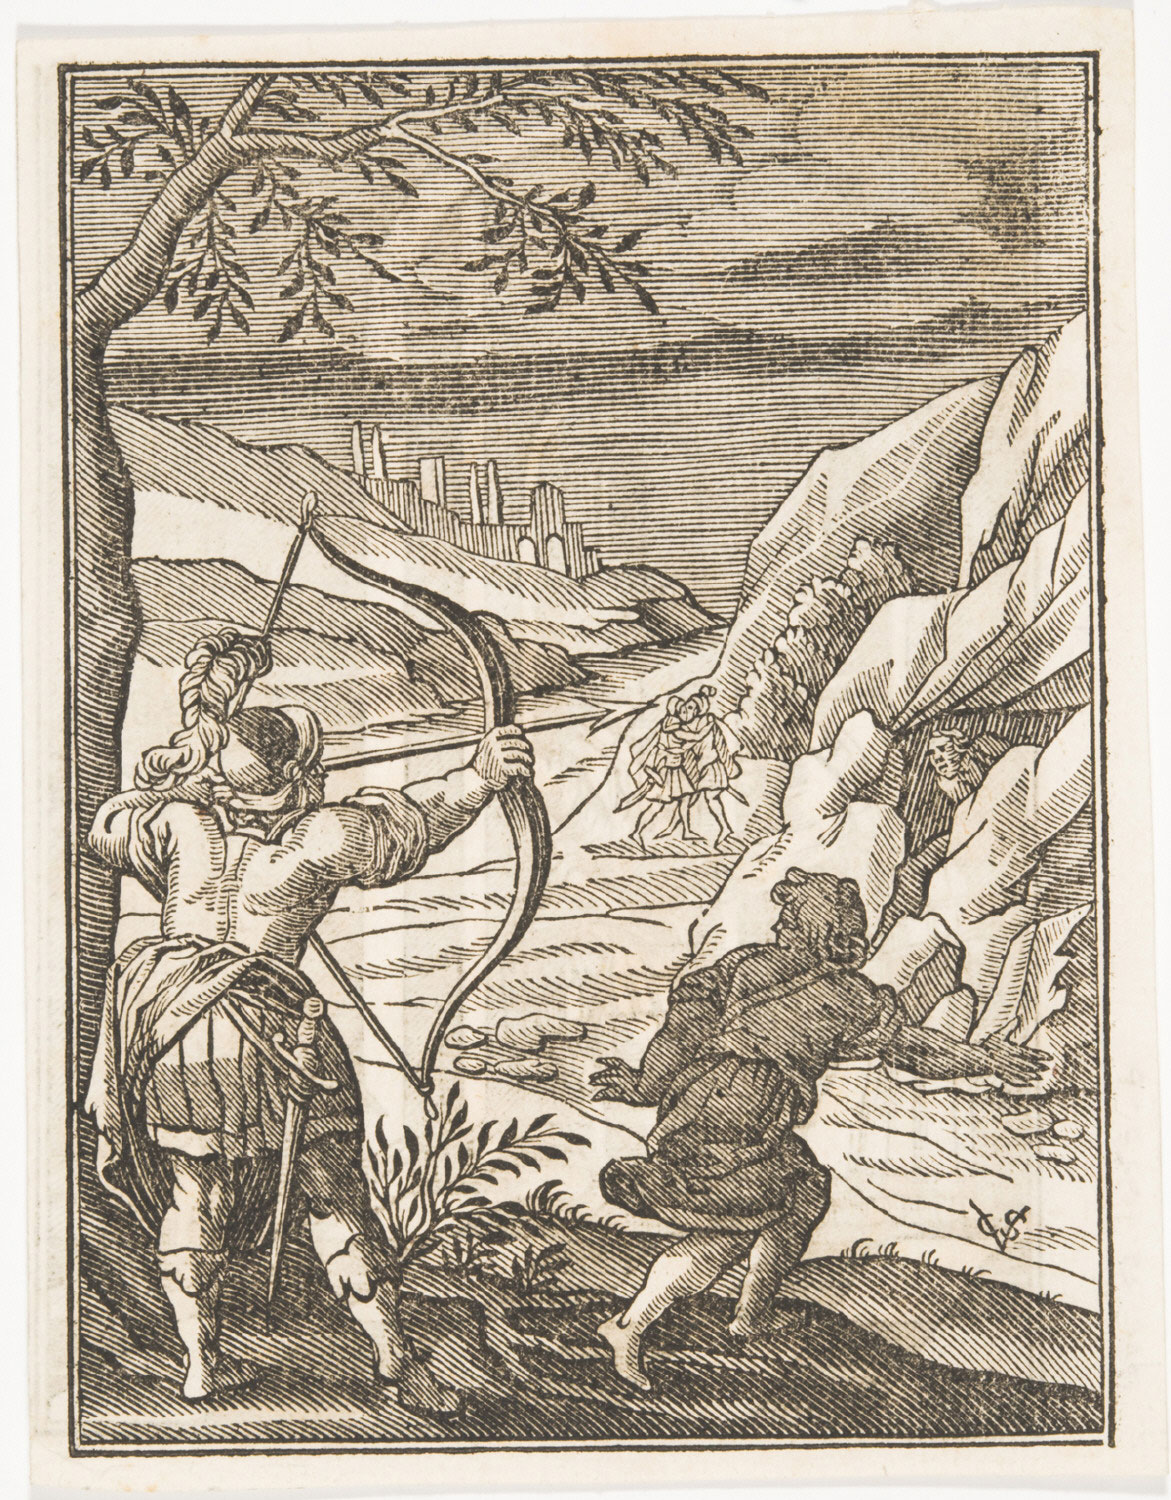 Biblical Scene with Archer Shooting across a River